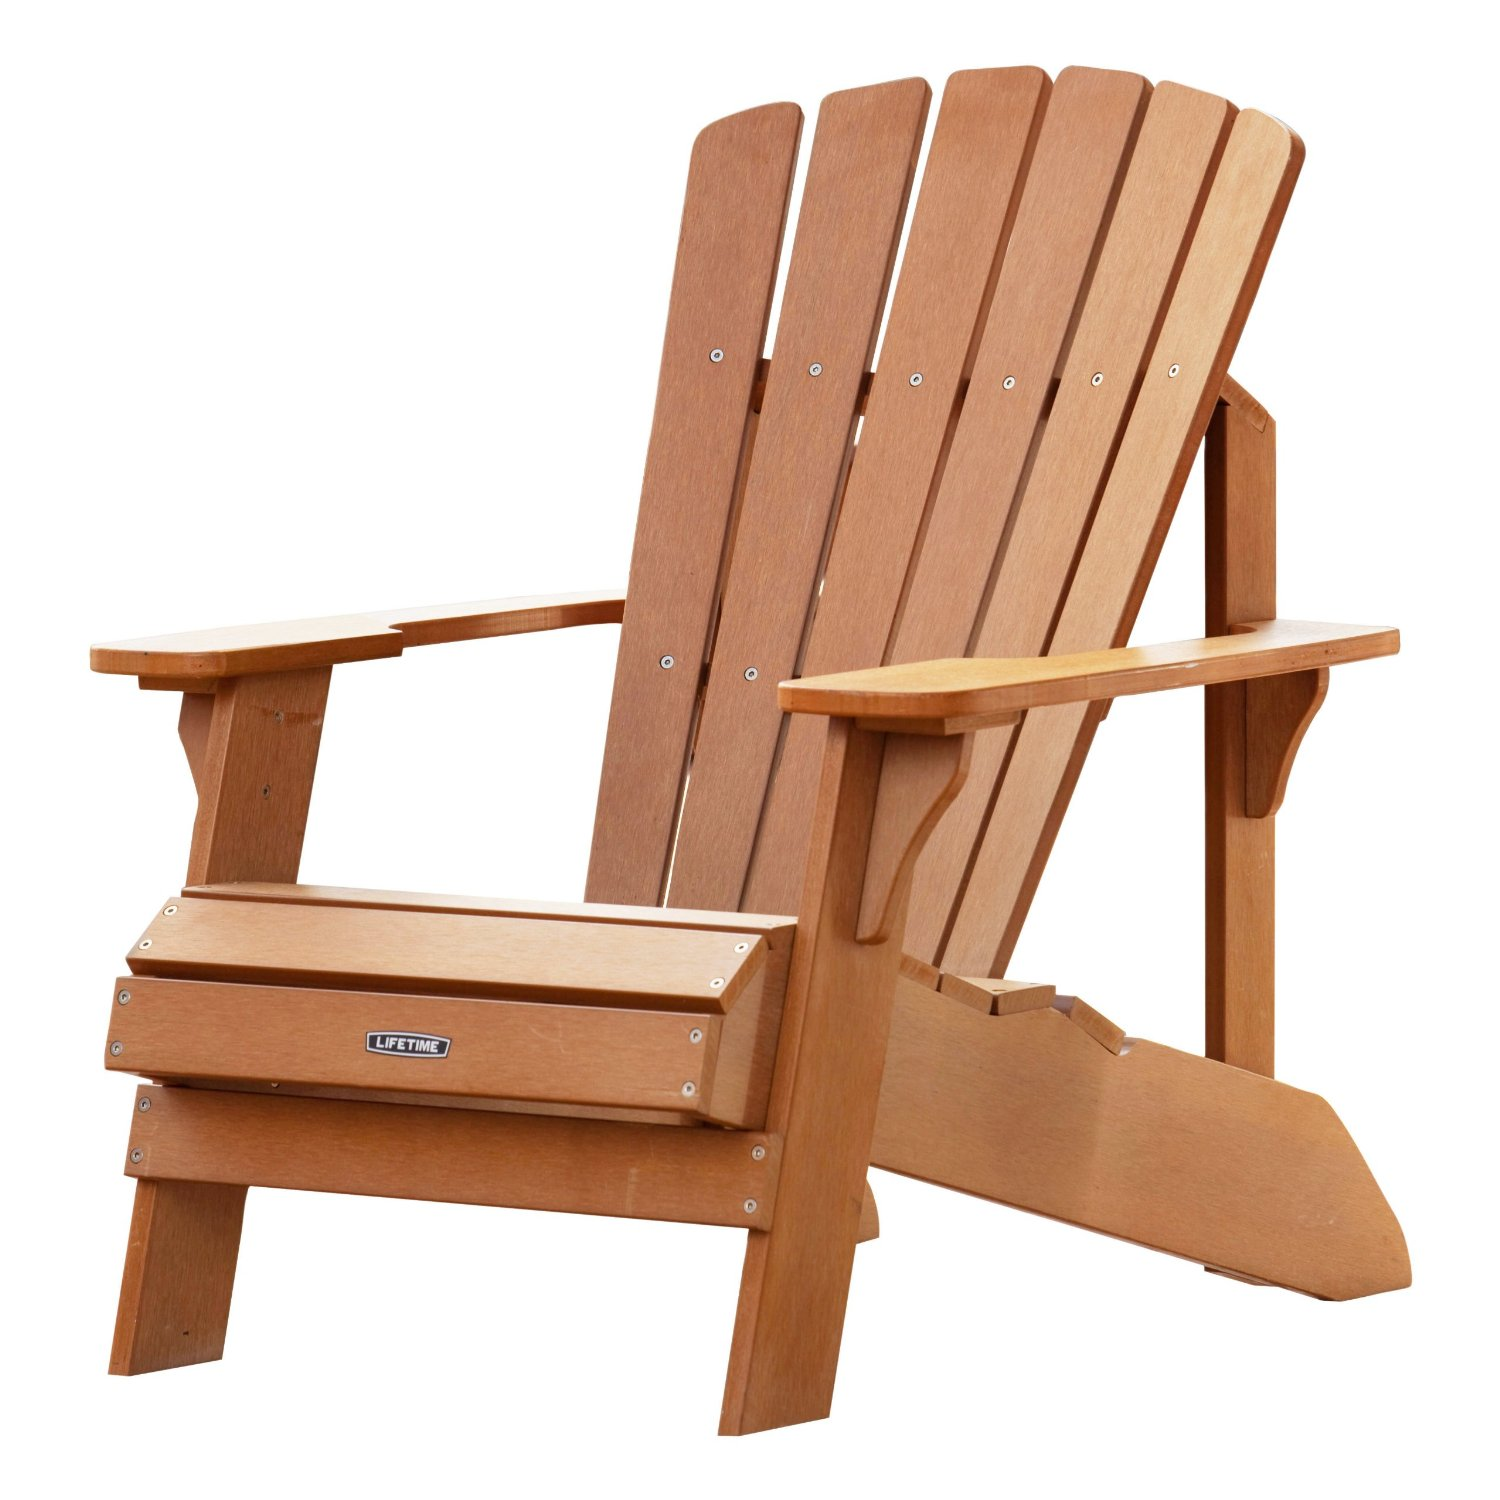 Adirondack Chair Reviews Lifetime 60064 Adirondack Chair For Your Outdoor Space